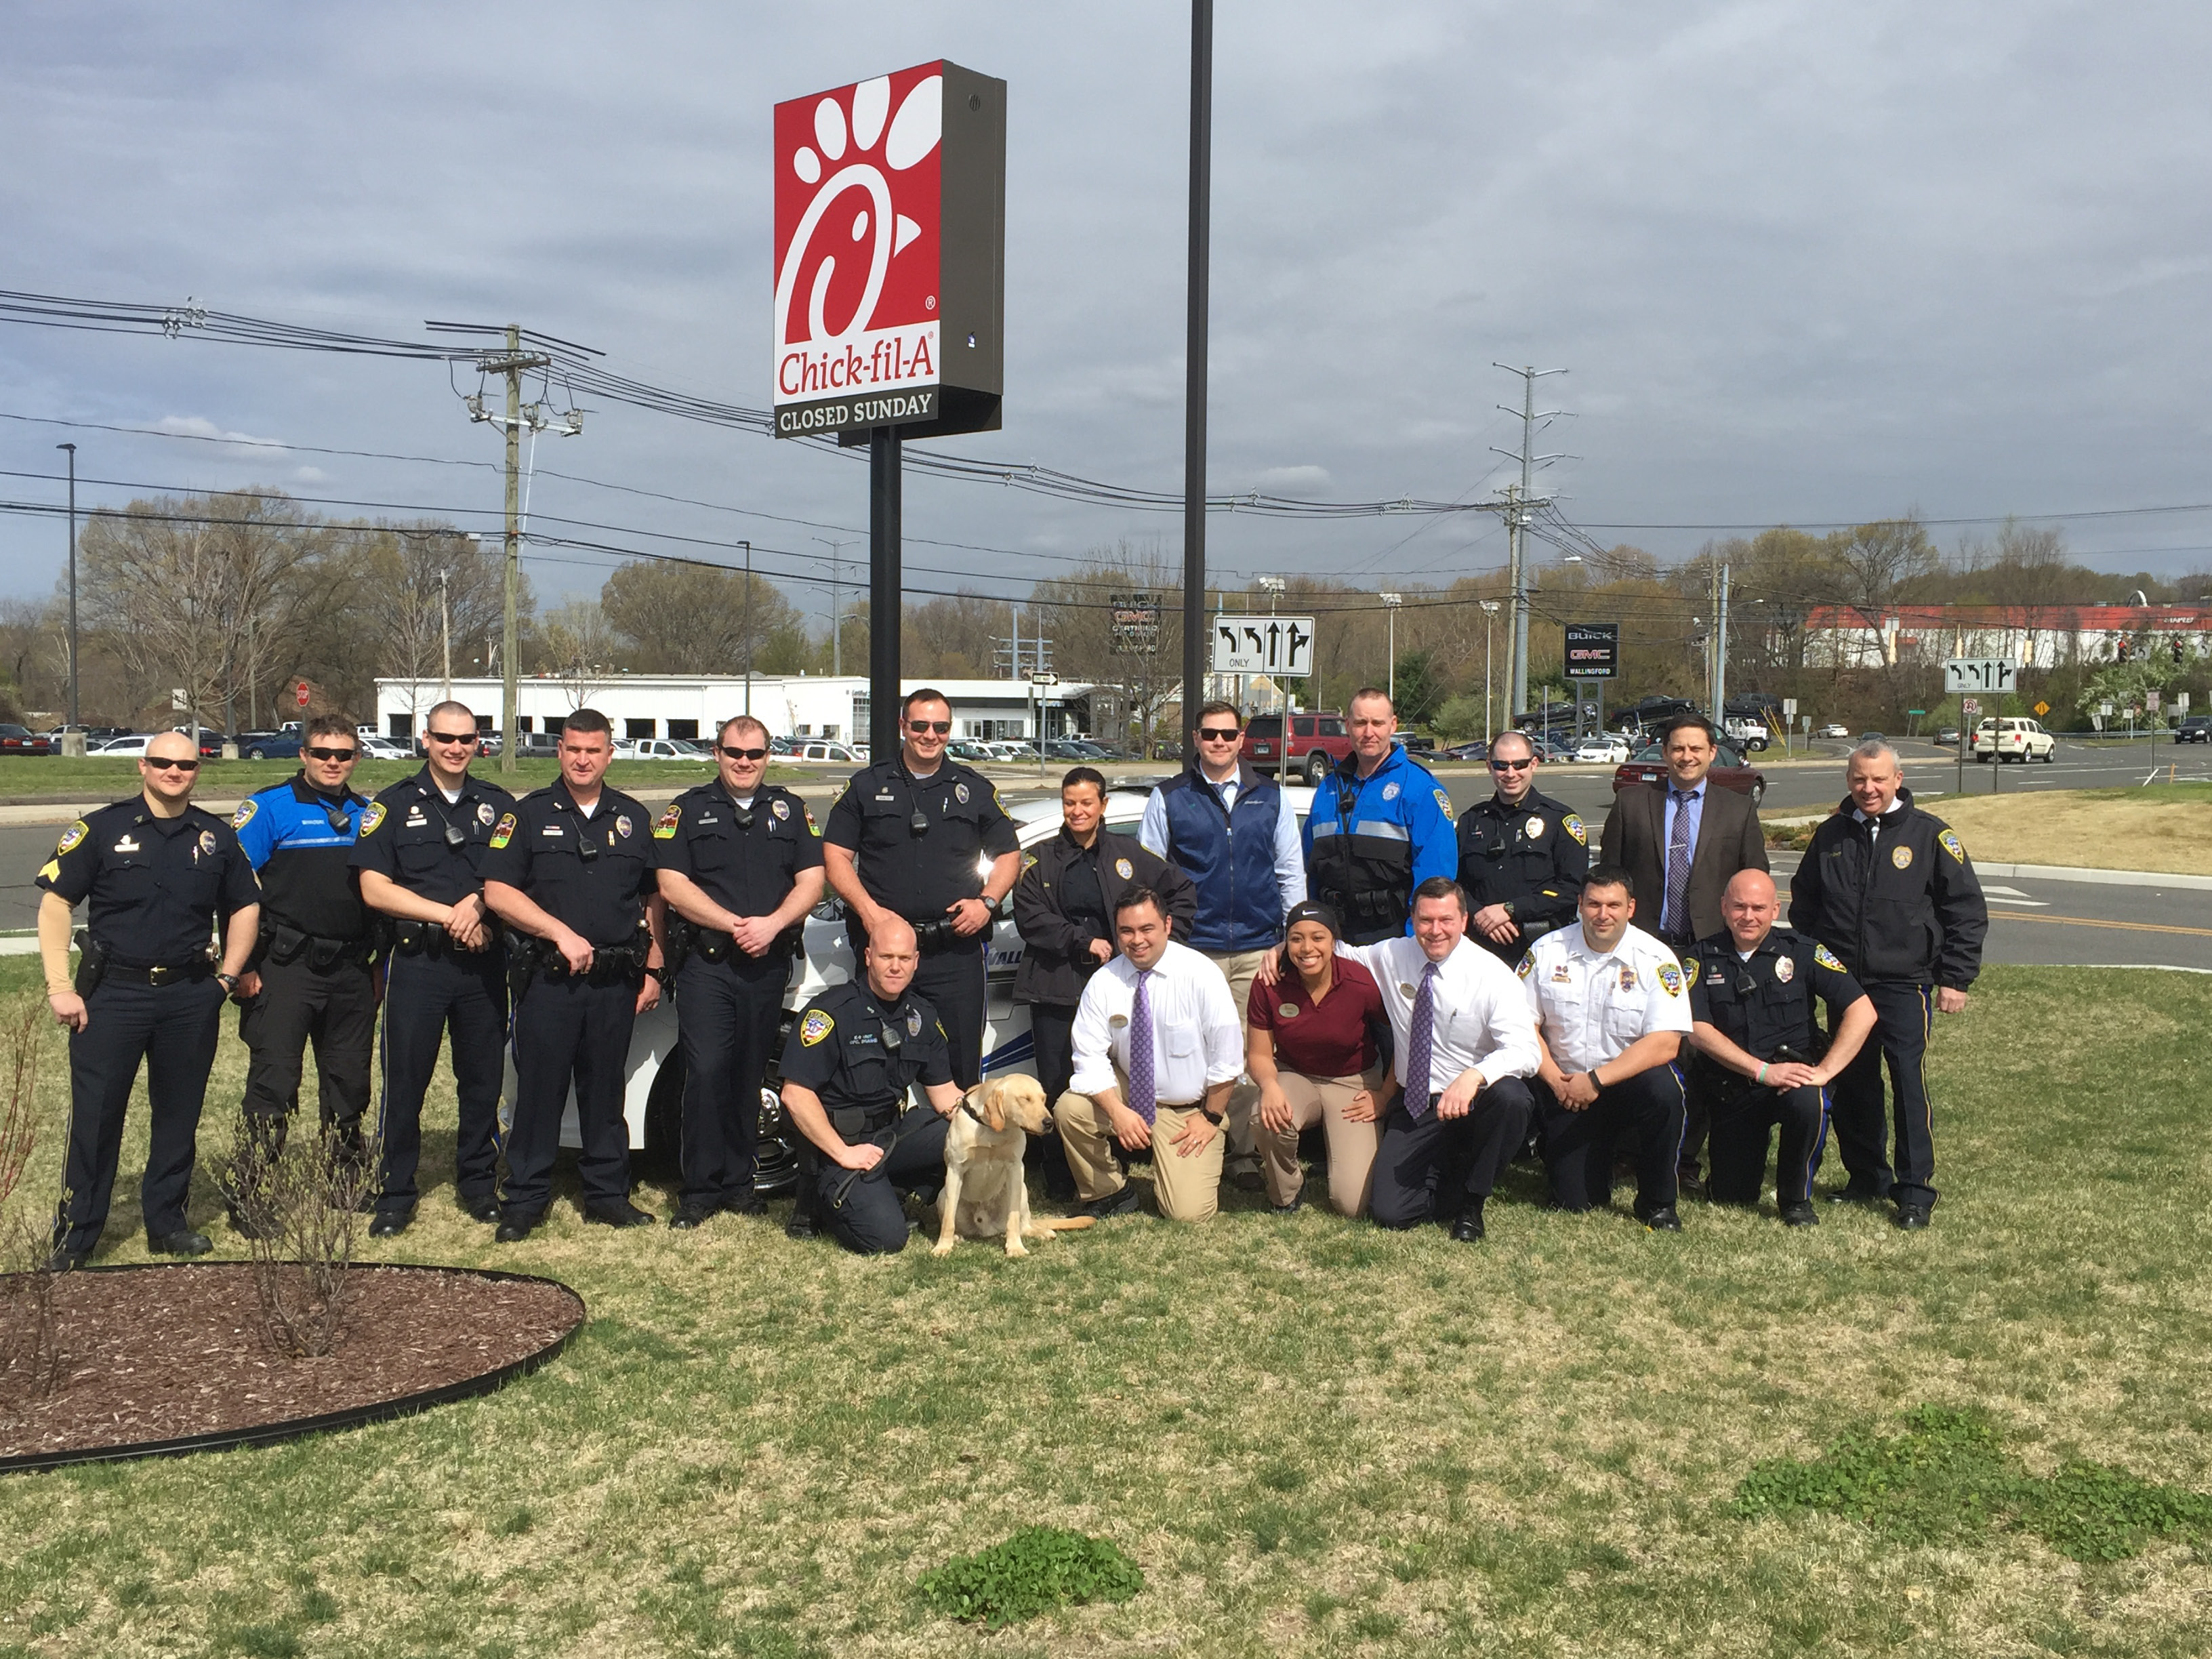 Members of the Wallingford Police Department host Coffee with a Cop Friday morning at Chick-fil-A restaurant on Route 5. The event is the first of several the department plansin the hopes of  building relationships and improving communication.